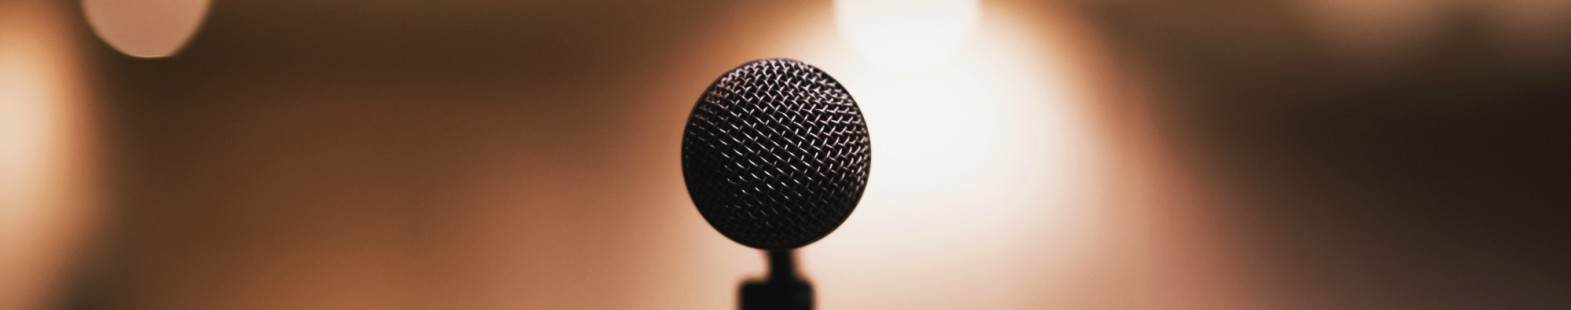 Photo shows a microphone for the story by the CMOS president on advocating for science.